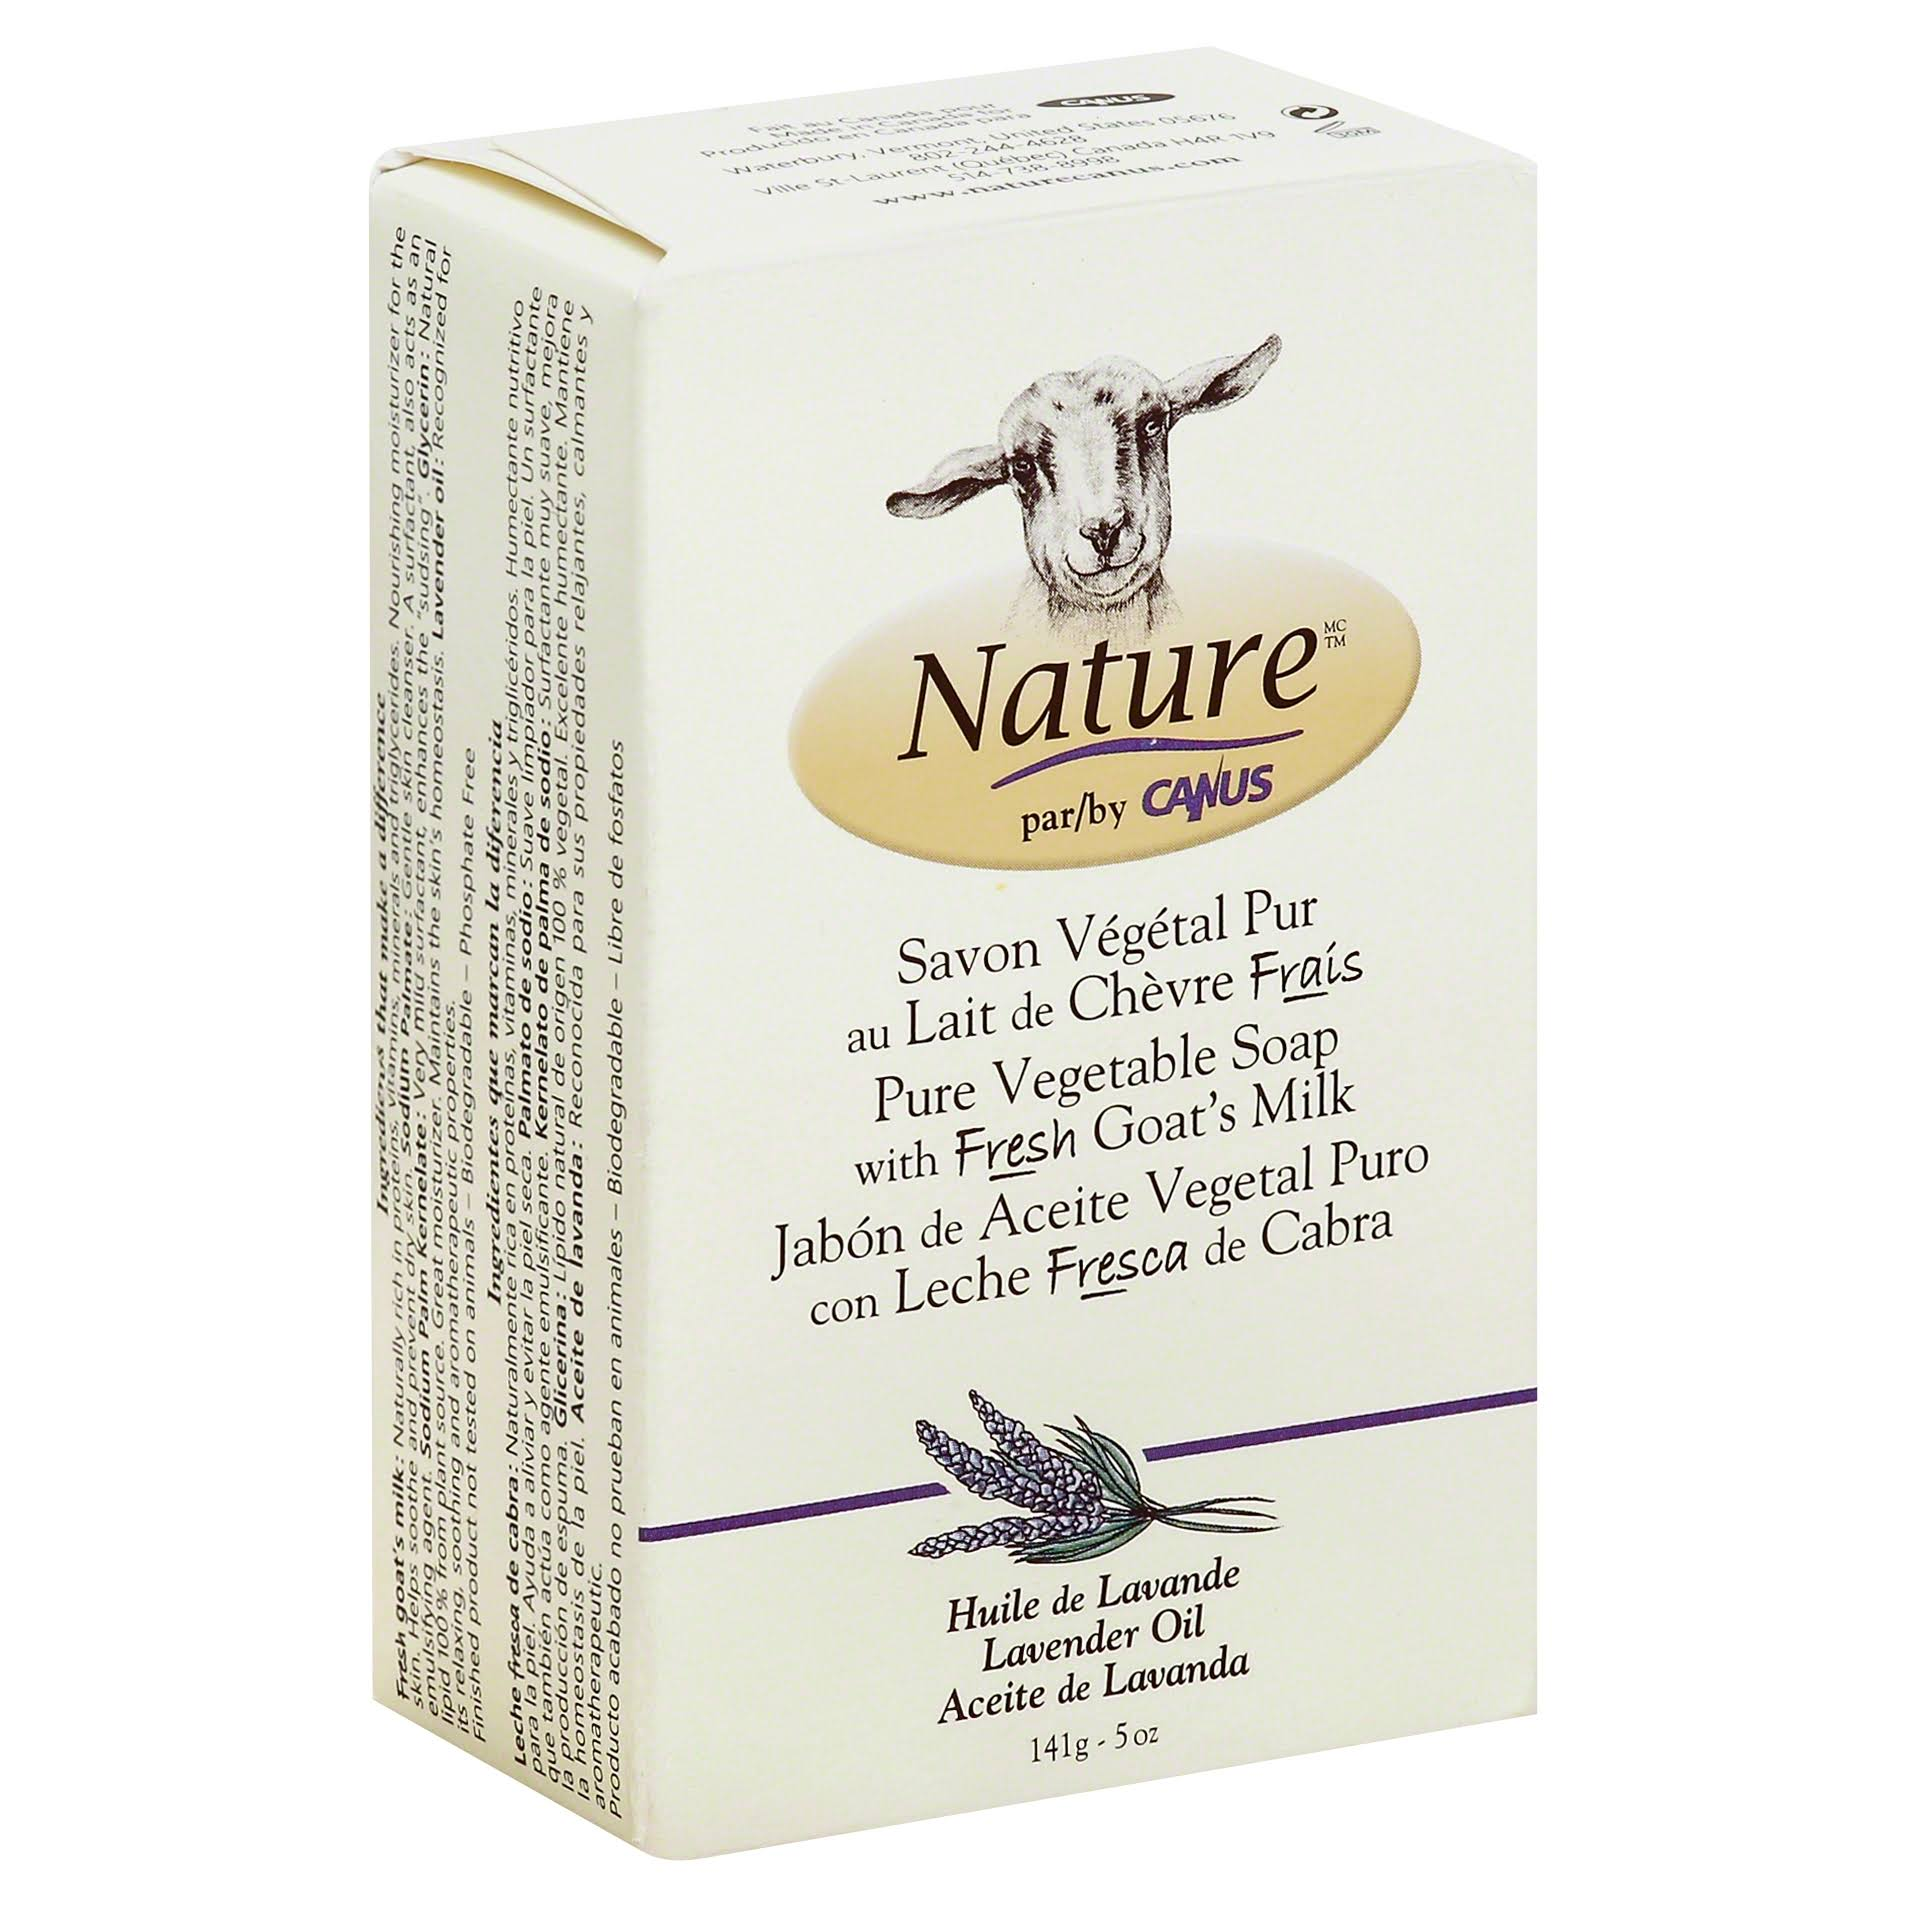 Canus Vermont Goat's Milk Natural Bar Soap - with Lavender Oil, 5oz